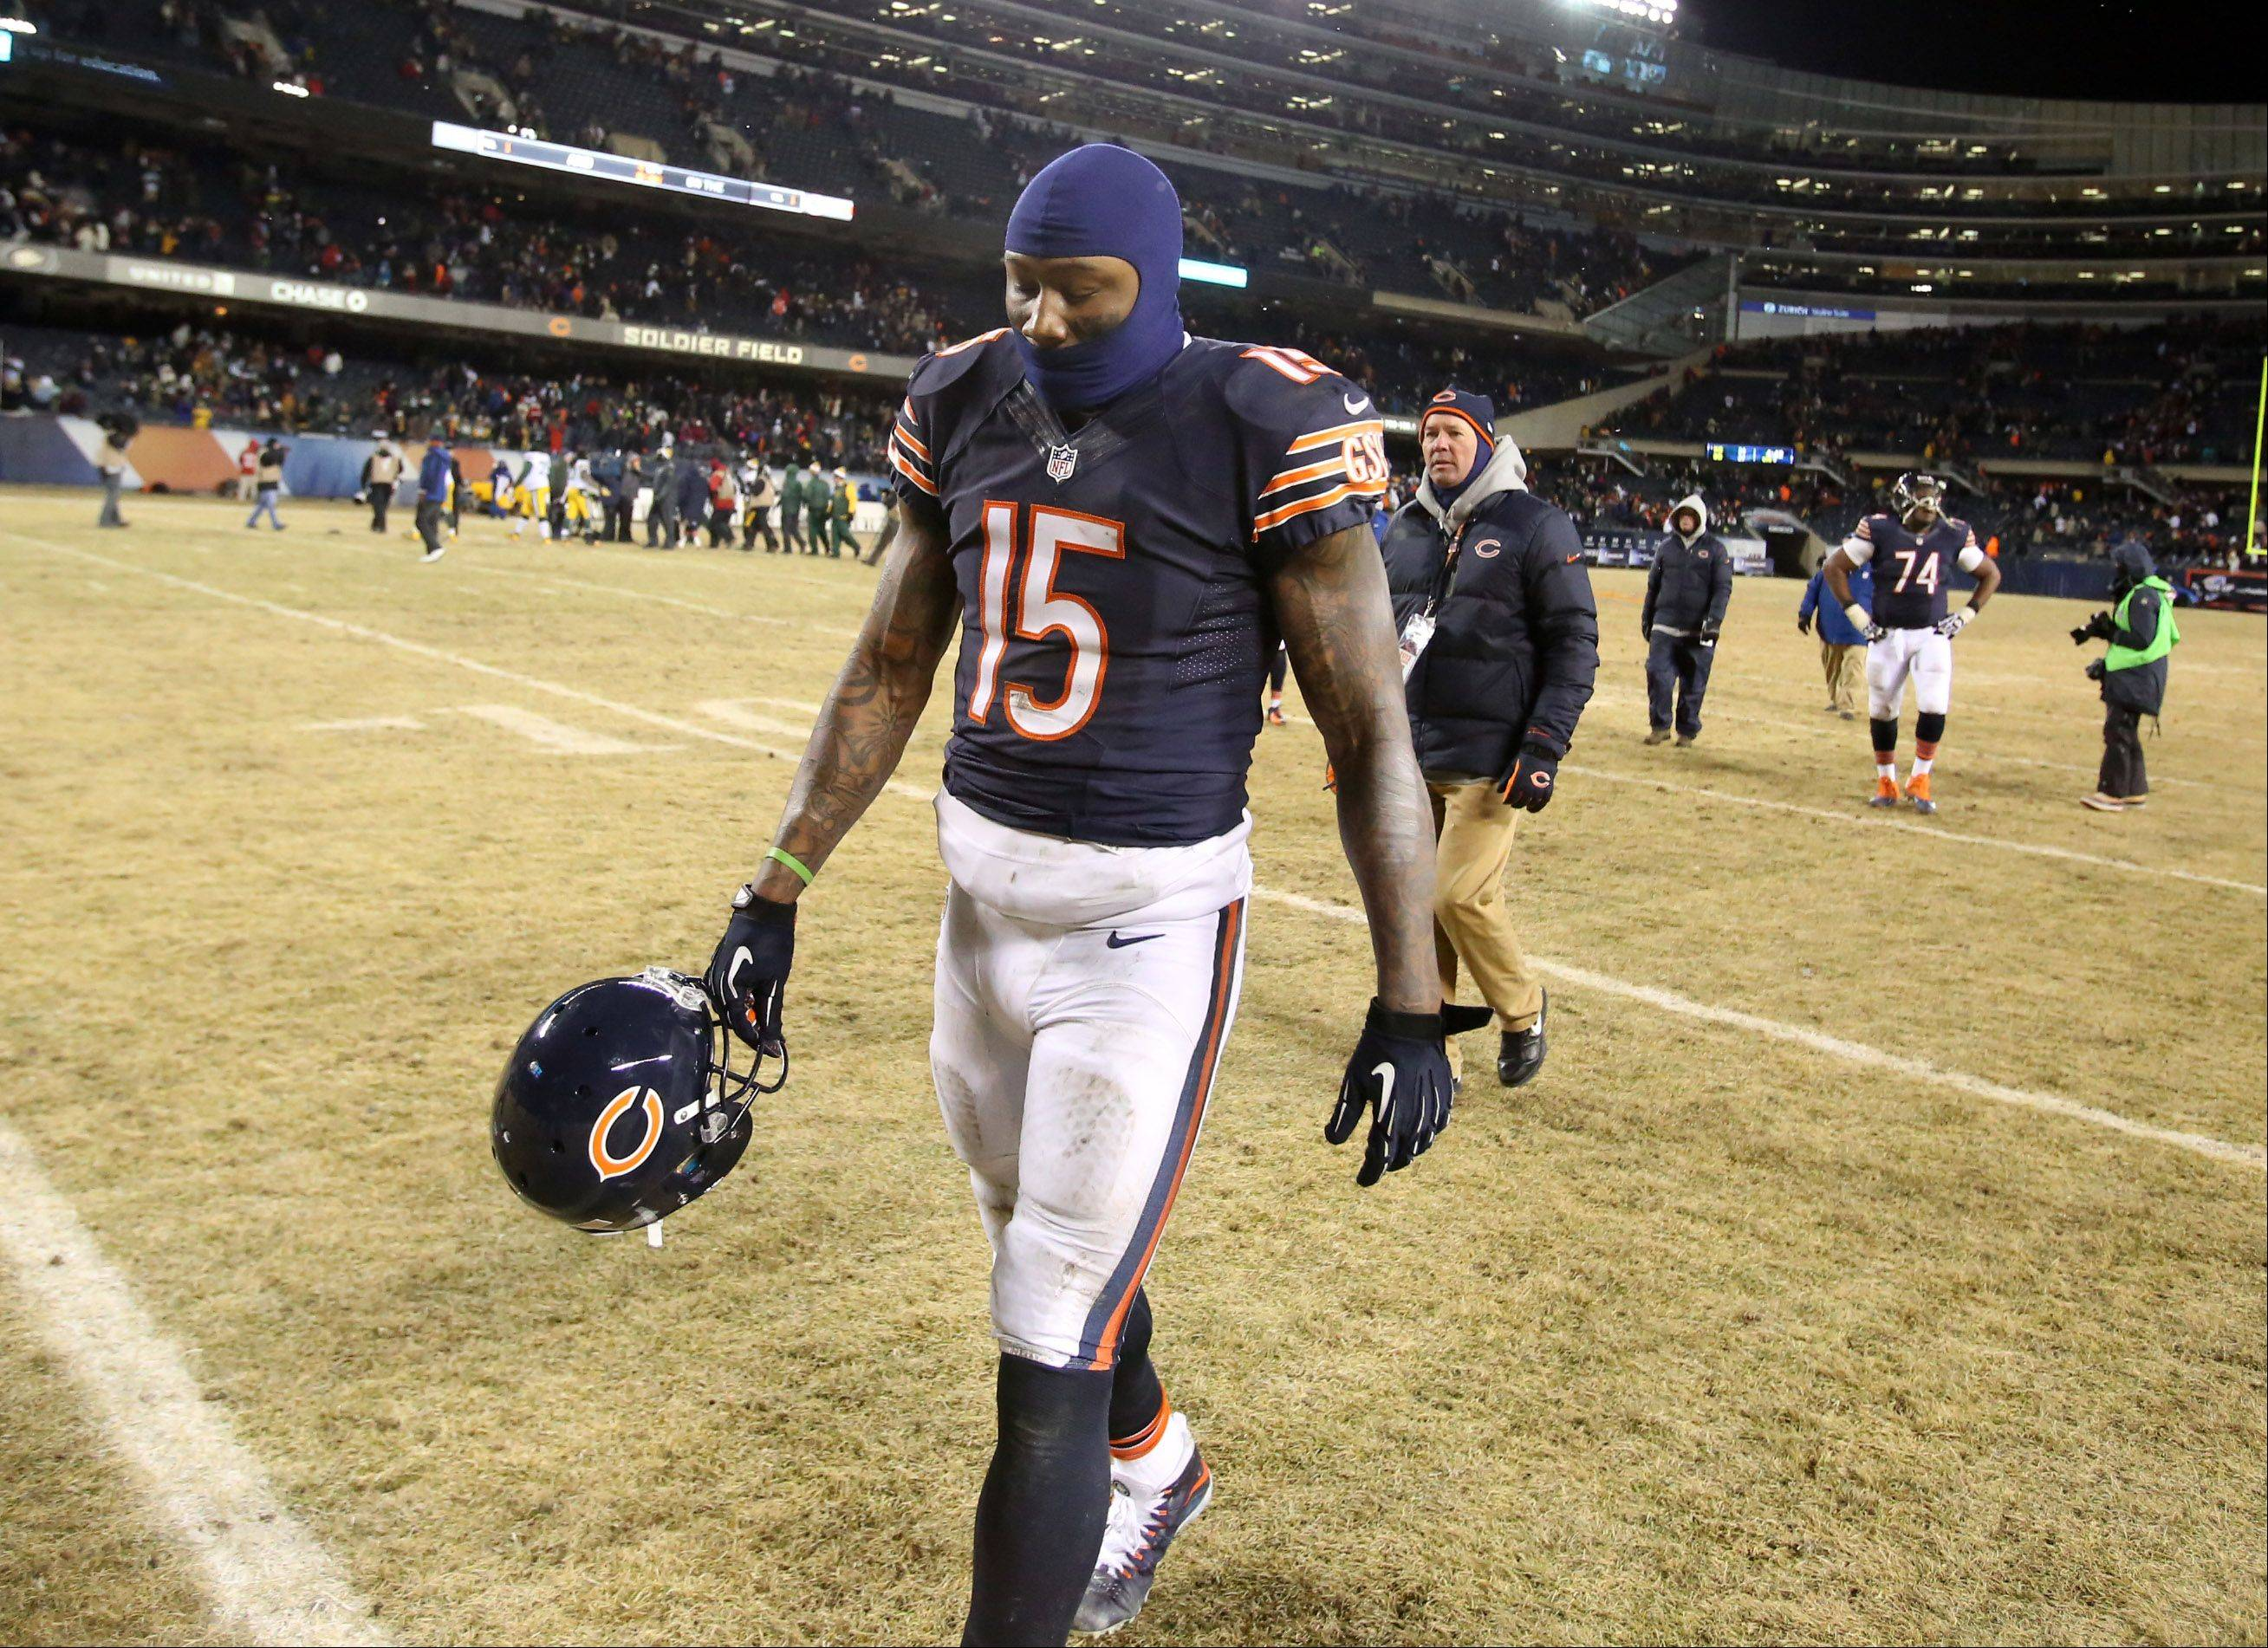 Brandon Marshall walks off the field after losing to the Packers 33-28 on Sunday at Soldier Field in Chicago. Marshall has still never been on a team that reached the playoffs.